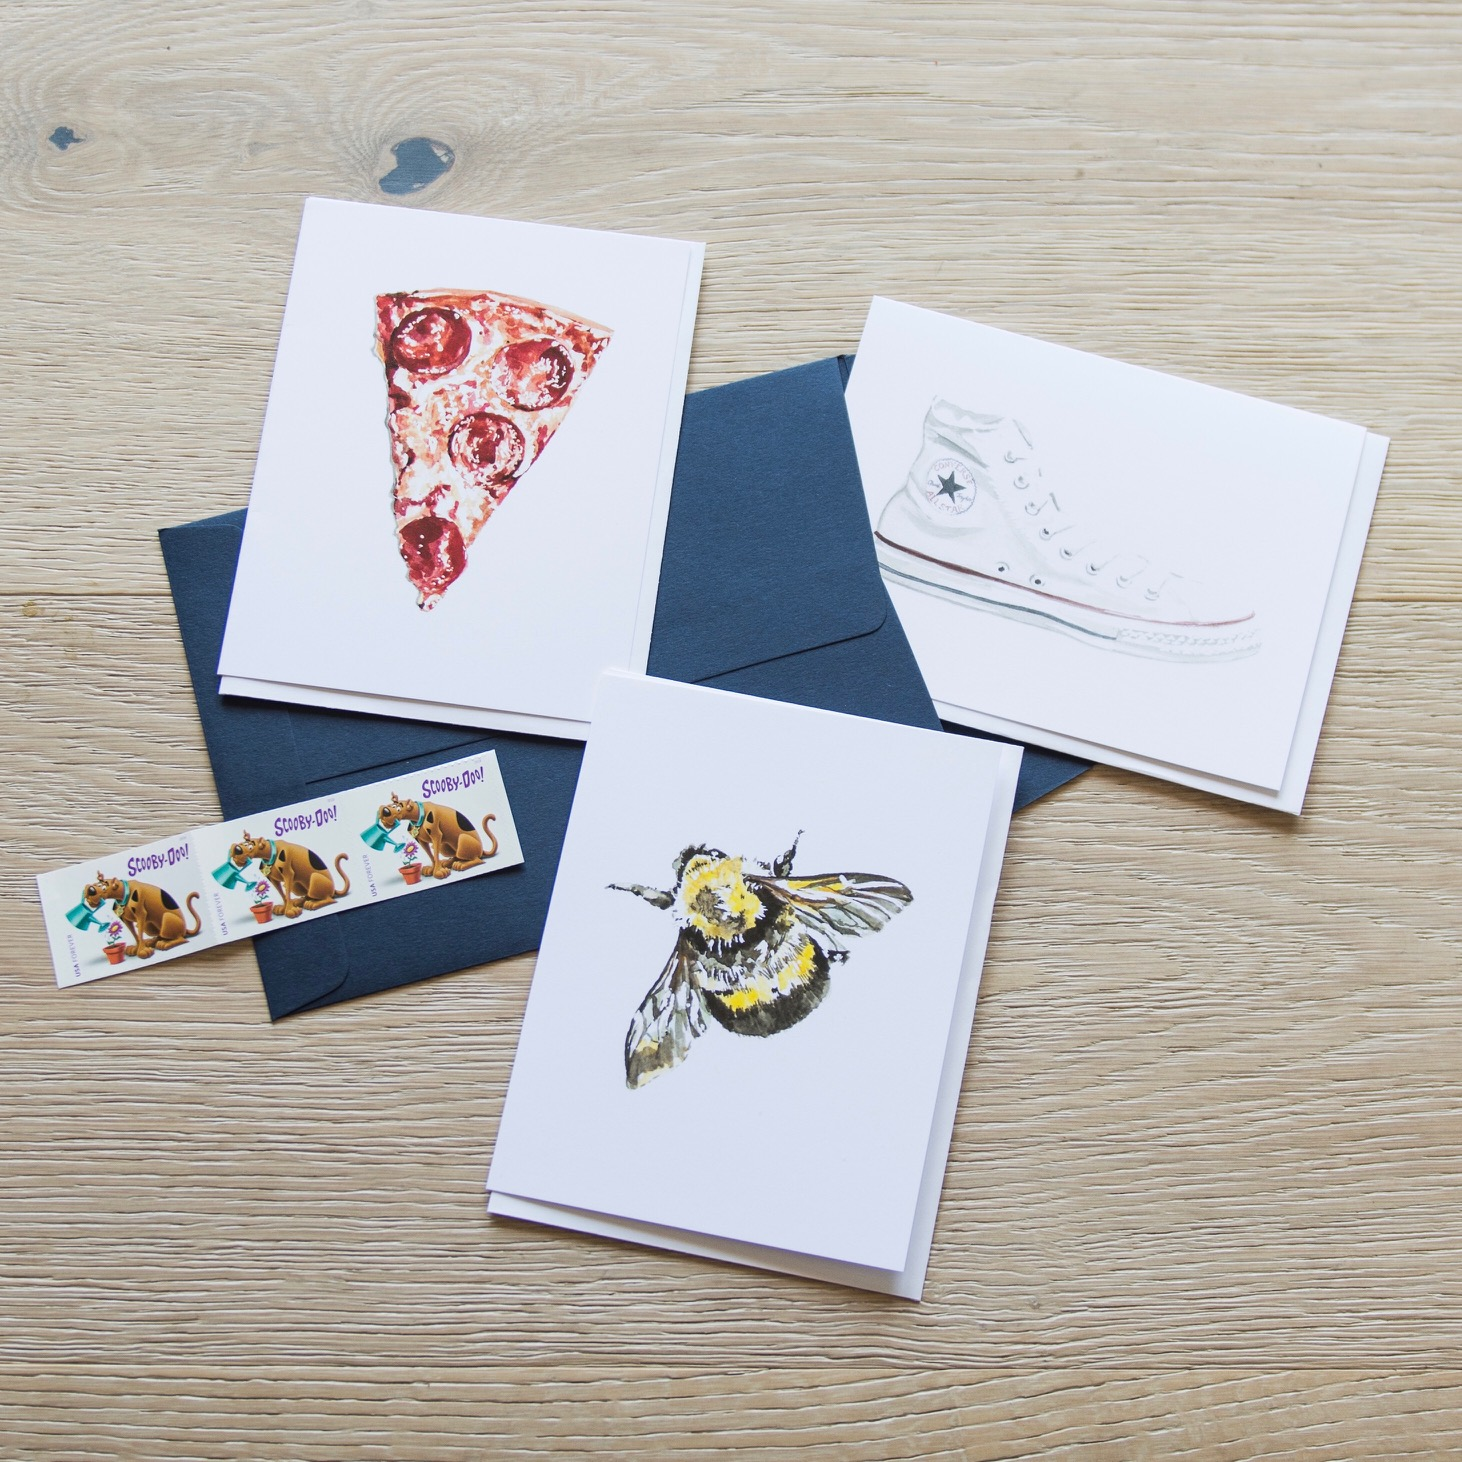 Kids Stationery Subscription Box - One-Per-Week